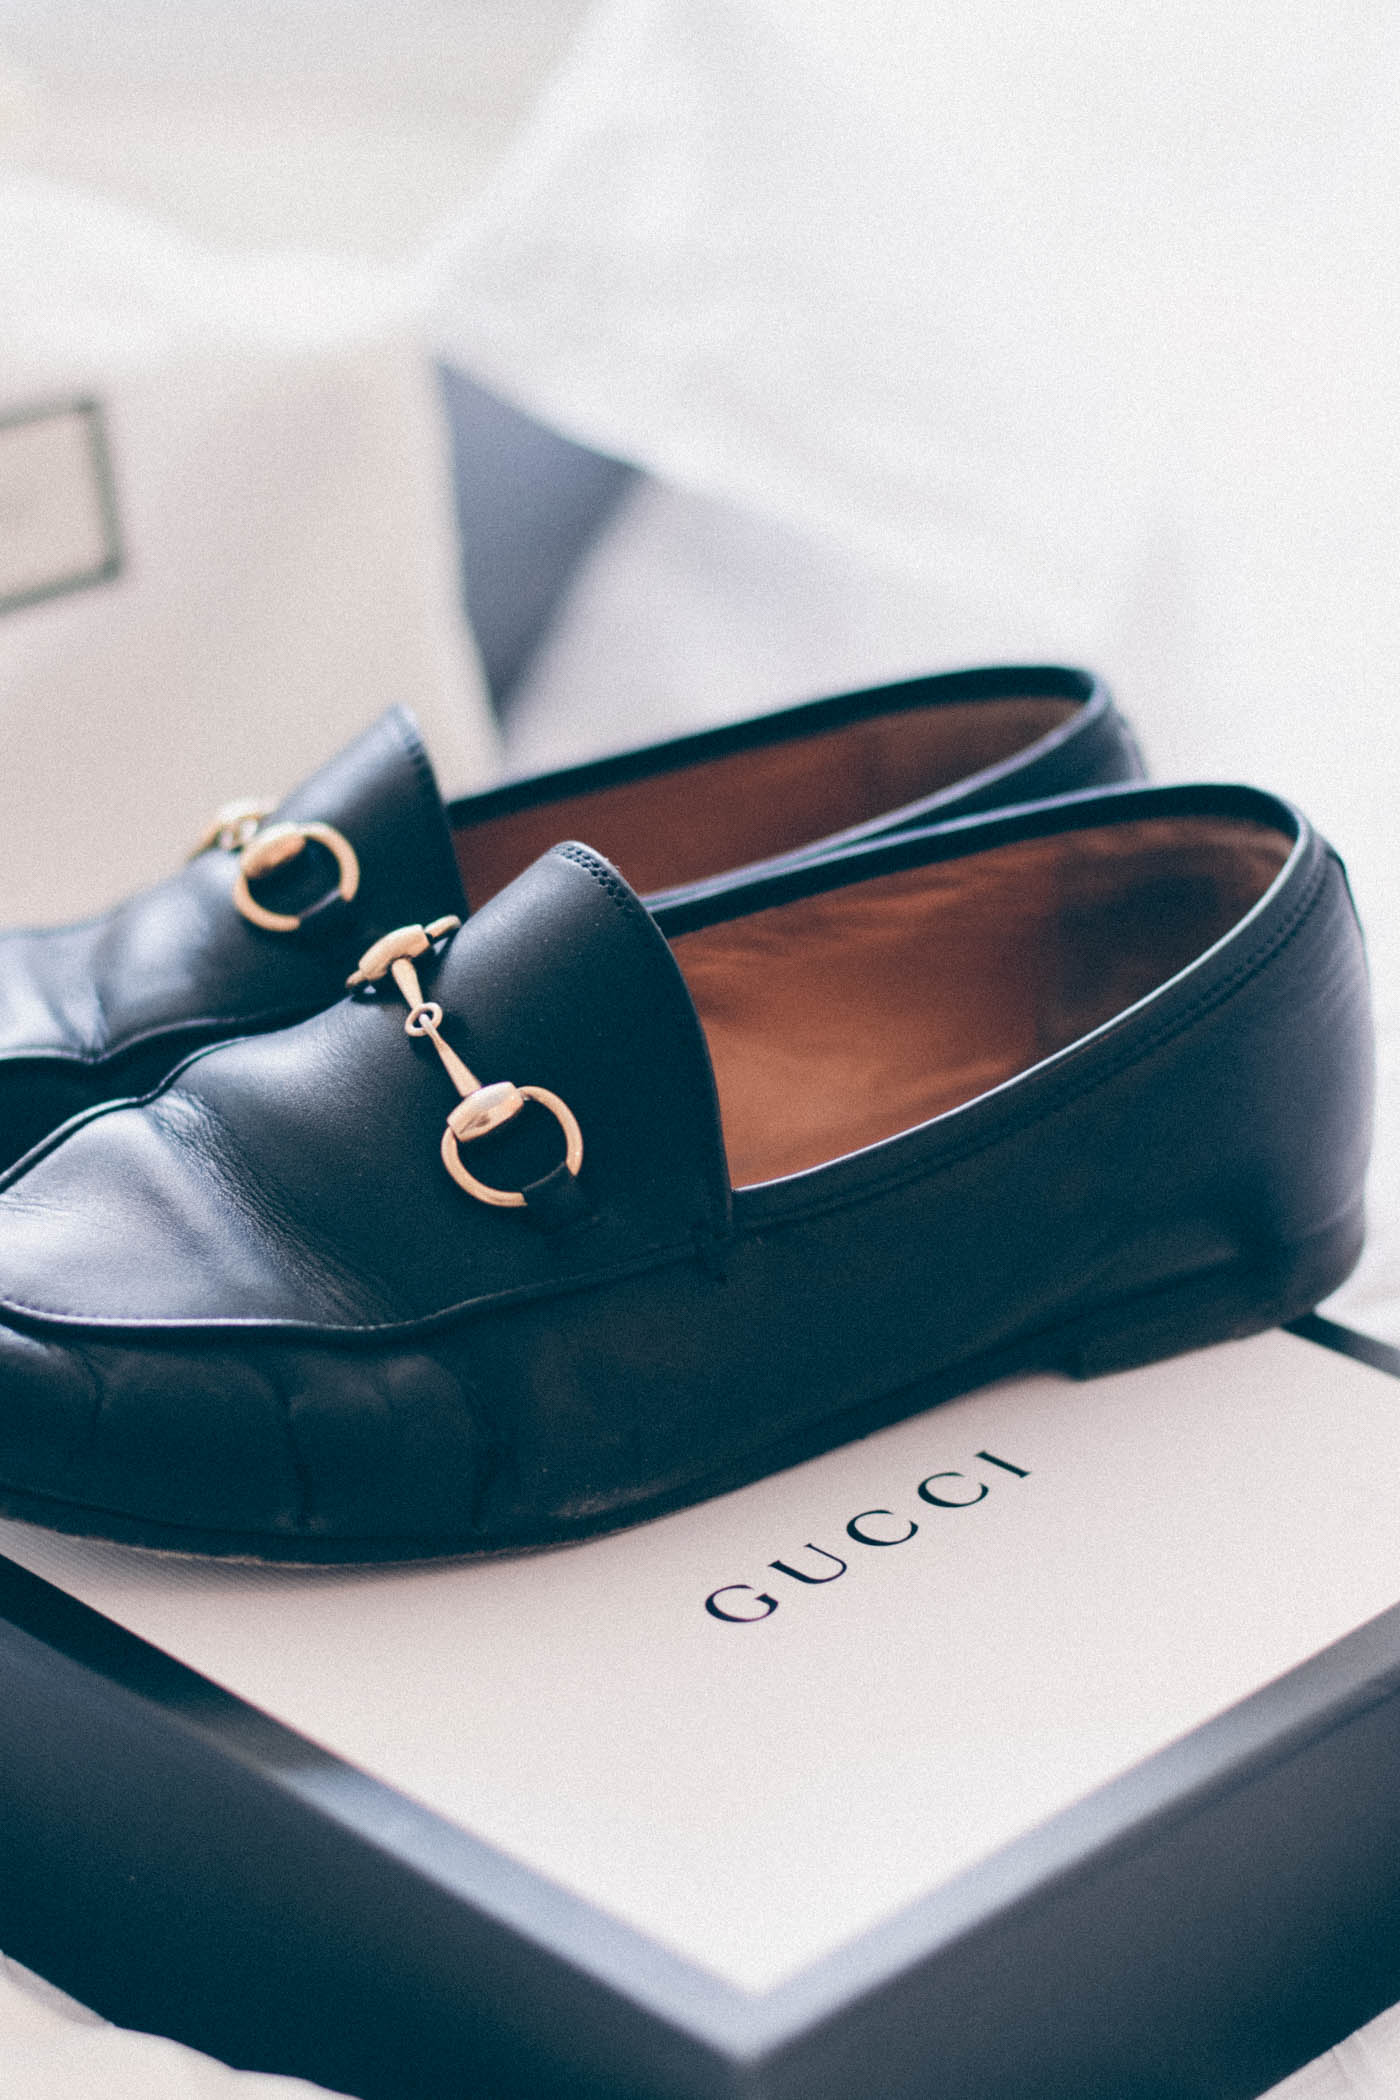 destroyed Gucci loafers